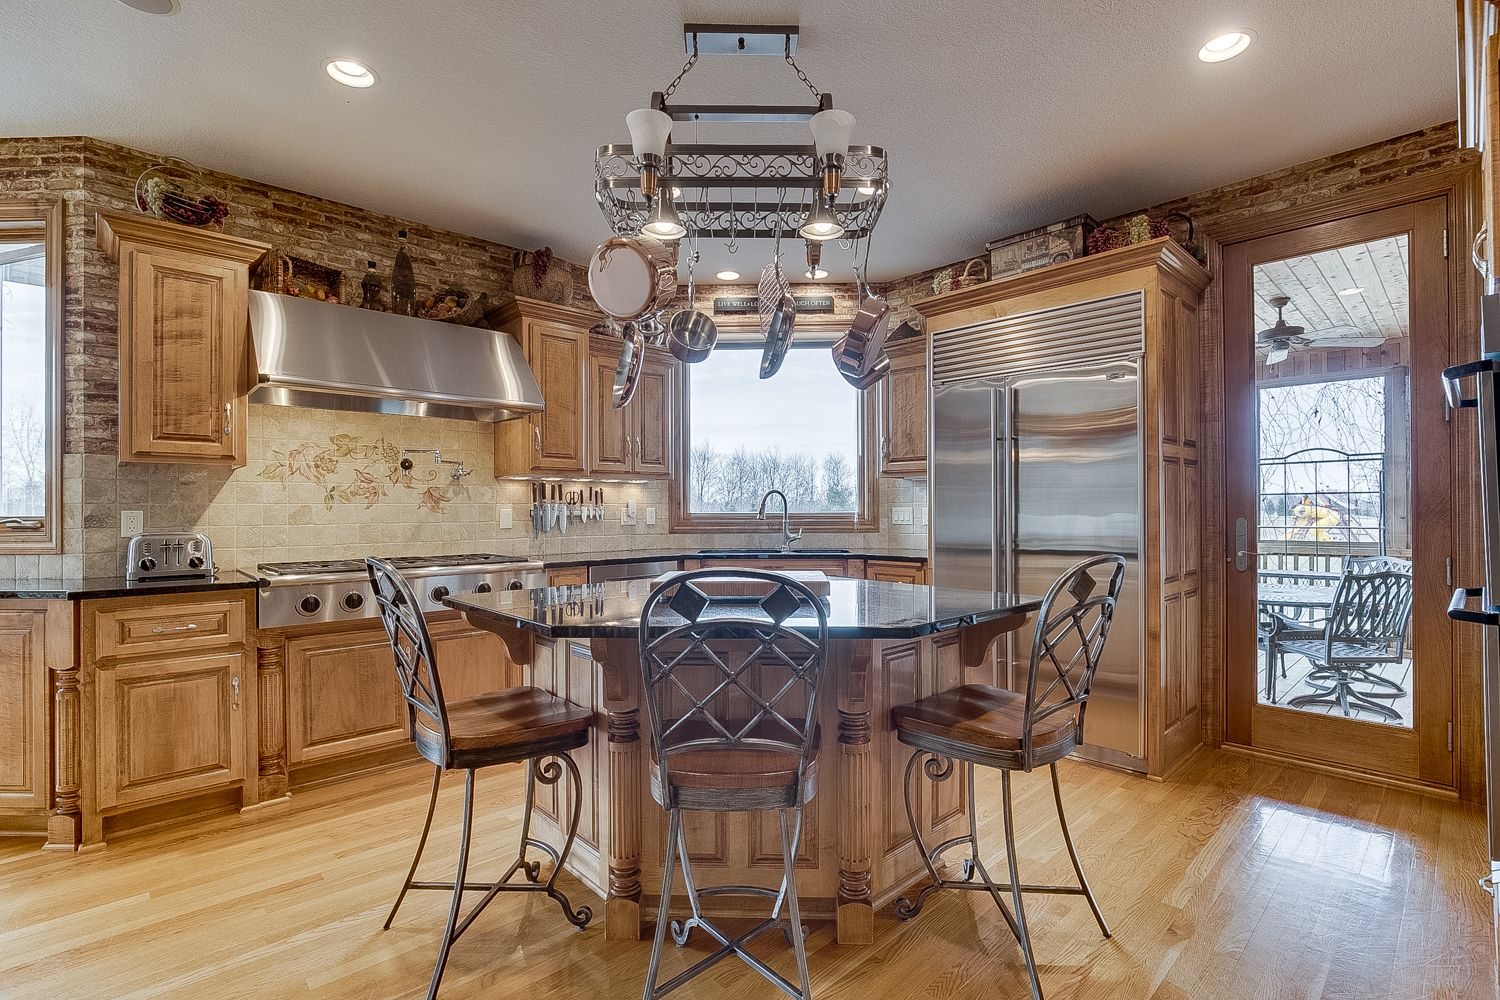 Gourmet kitchen in the home for sale on the Refuge